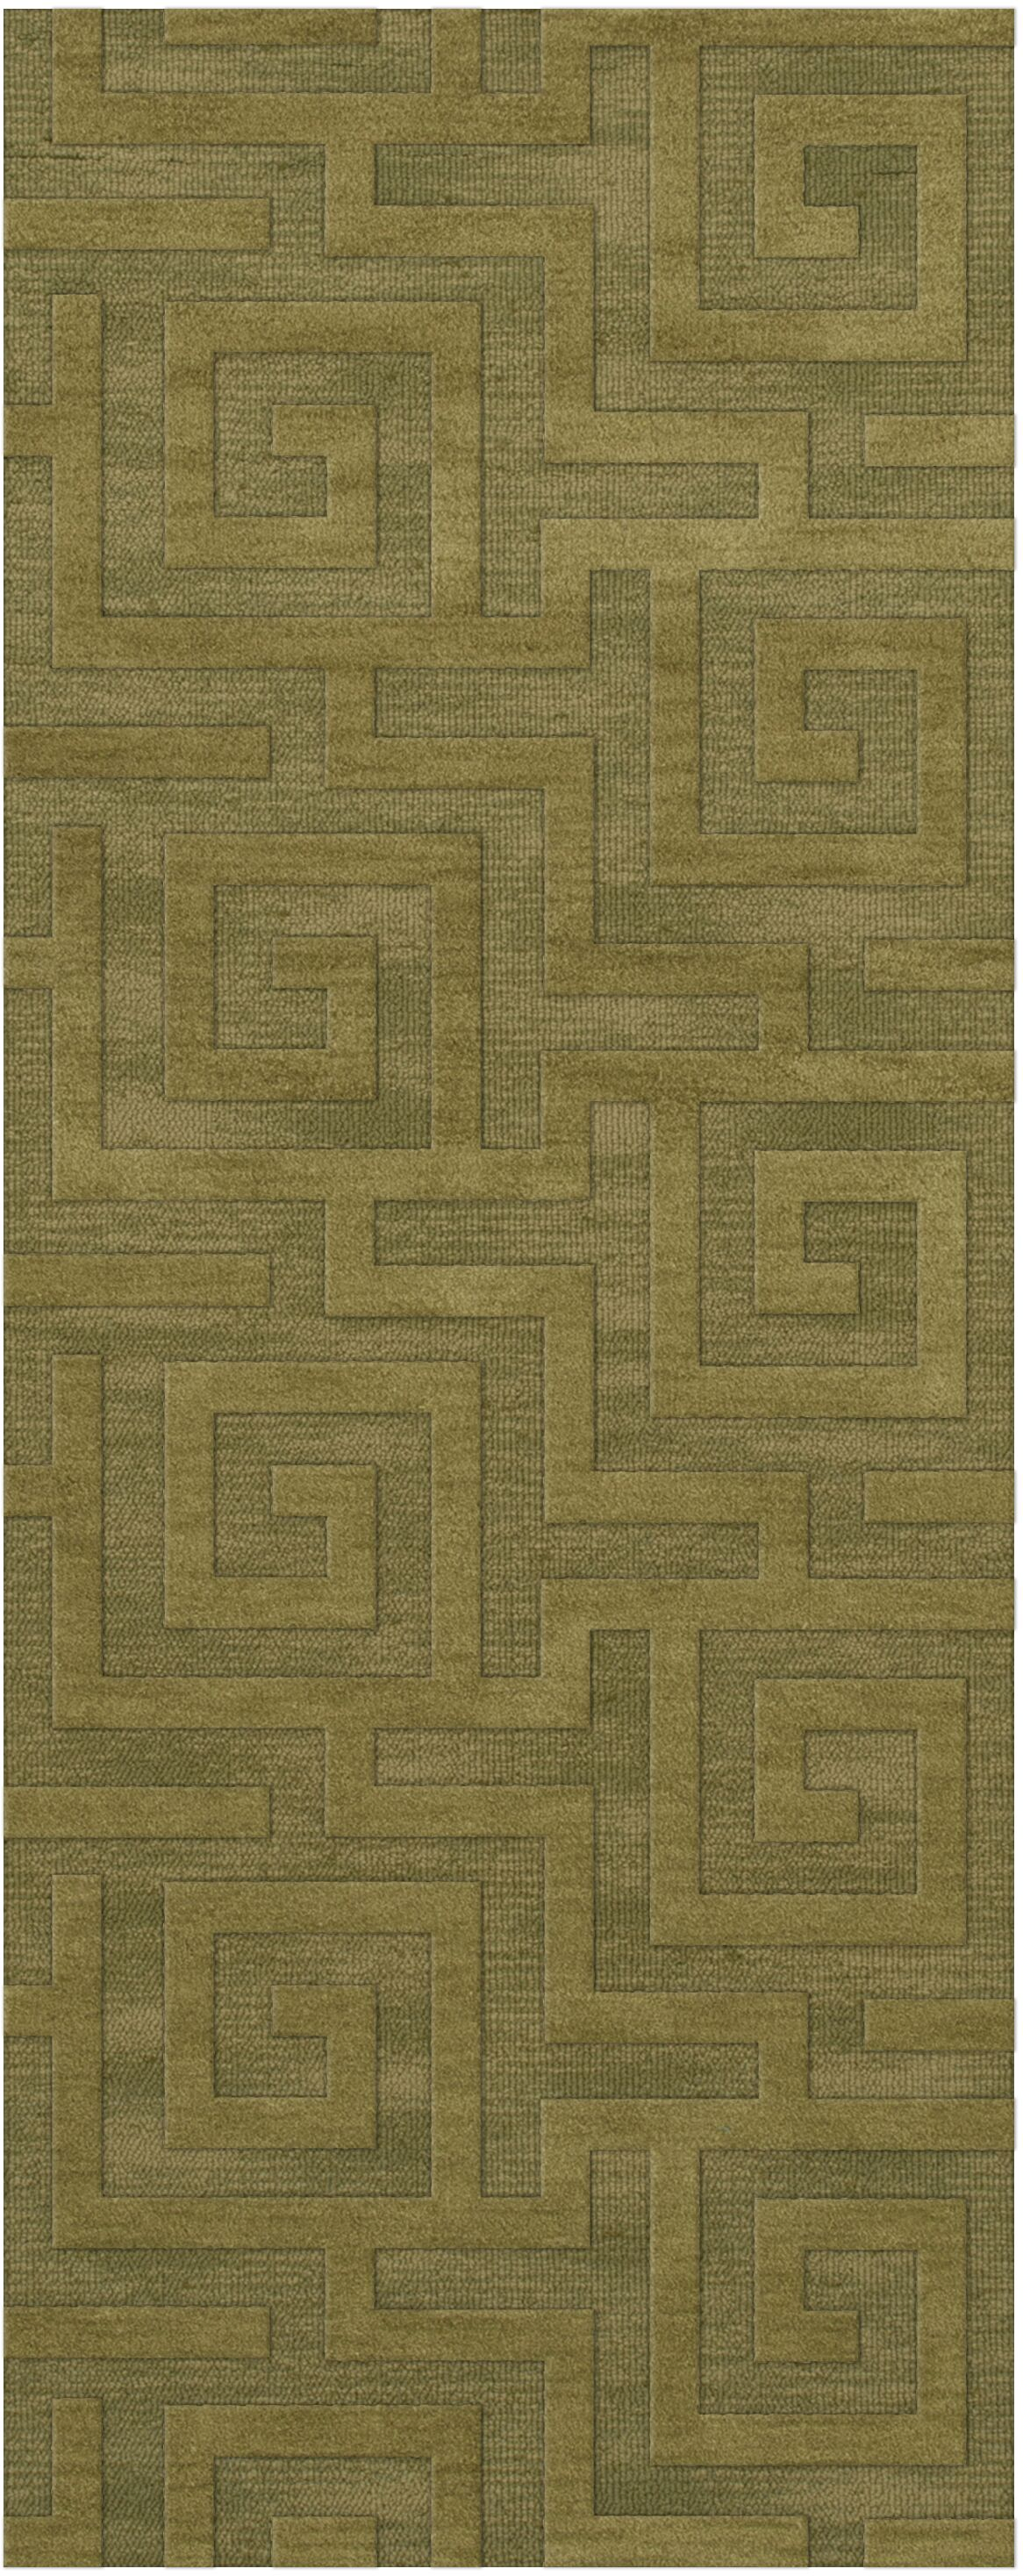 Dover Tufted Wool Pear Area Rug Rug Size: Runner 2'6